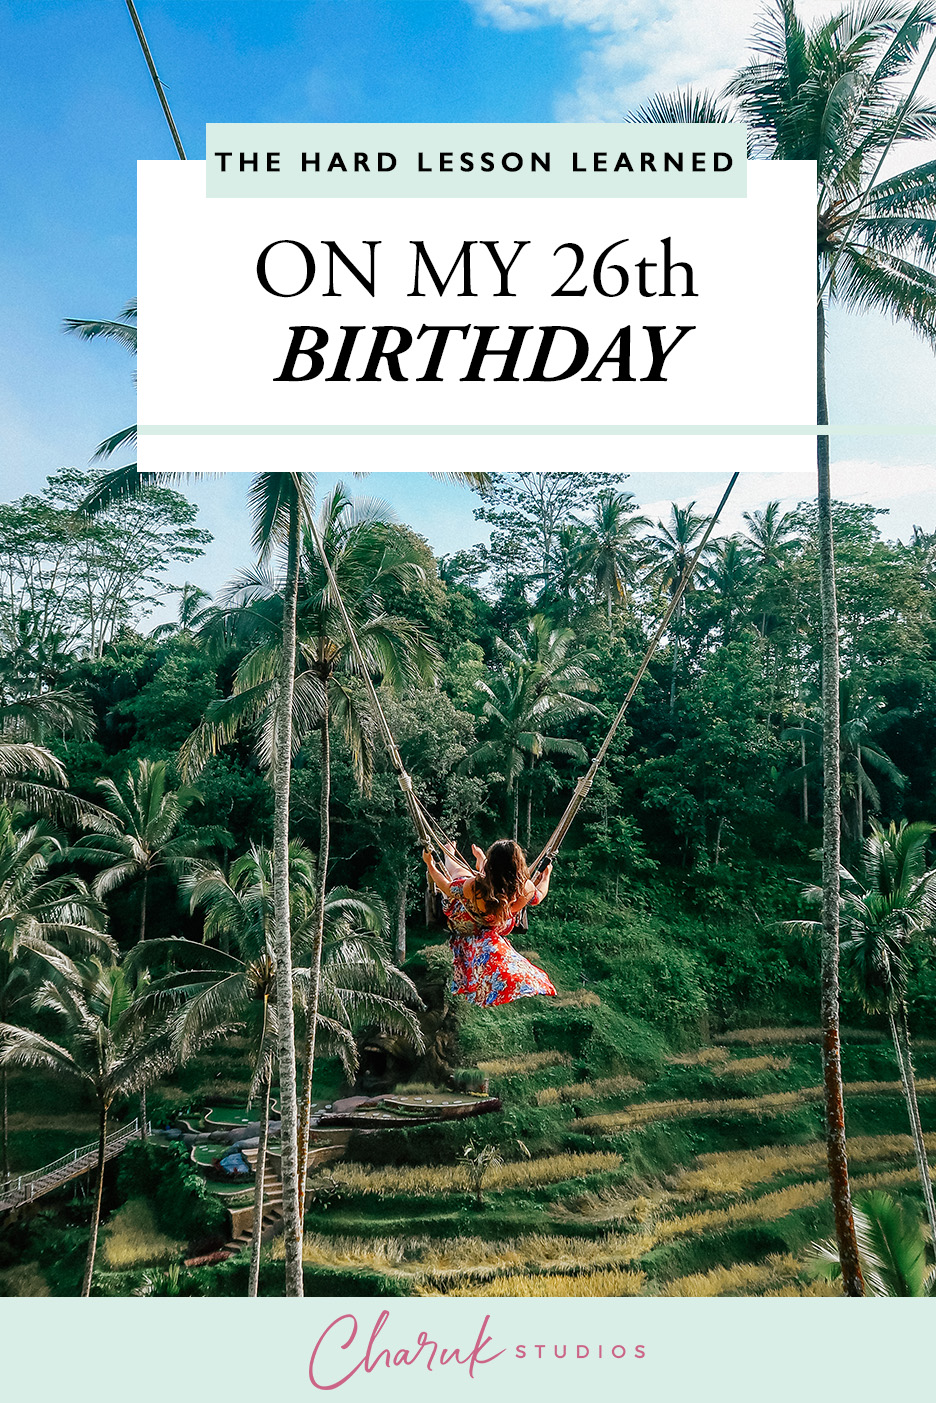 The Hard Lesson Learned on my 26th Birthday by Charuk Studios